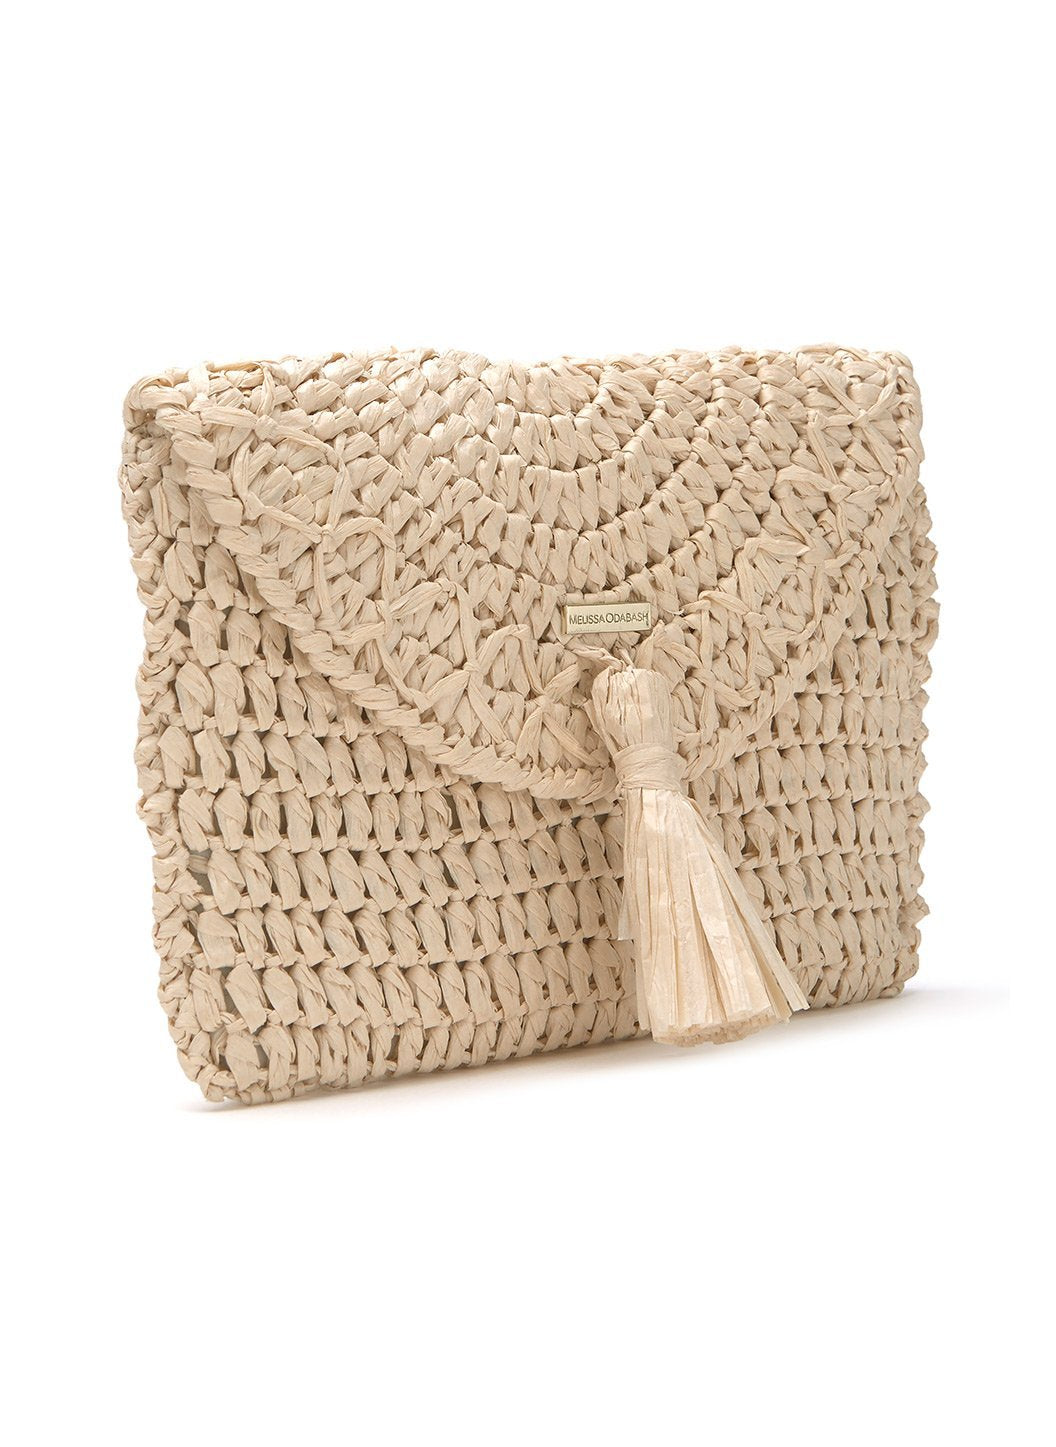 anacapri natural raffia clutch bag 2 2019